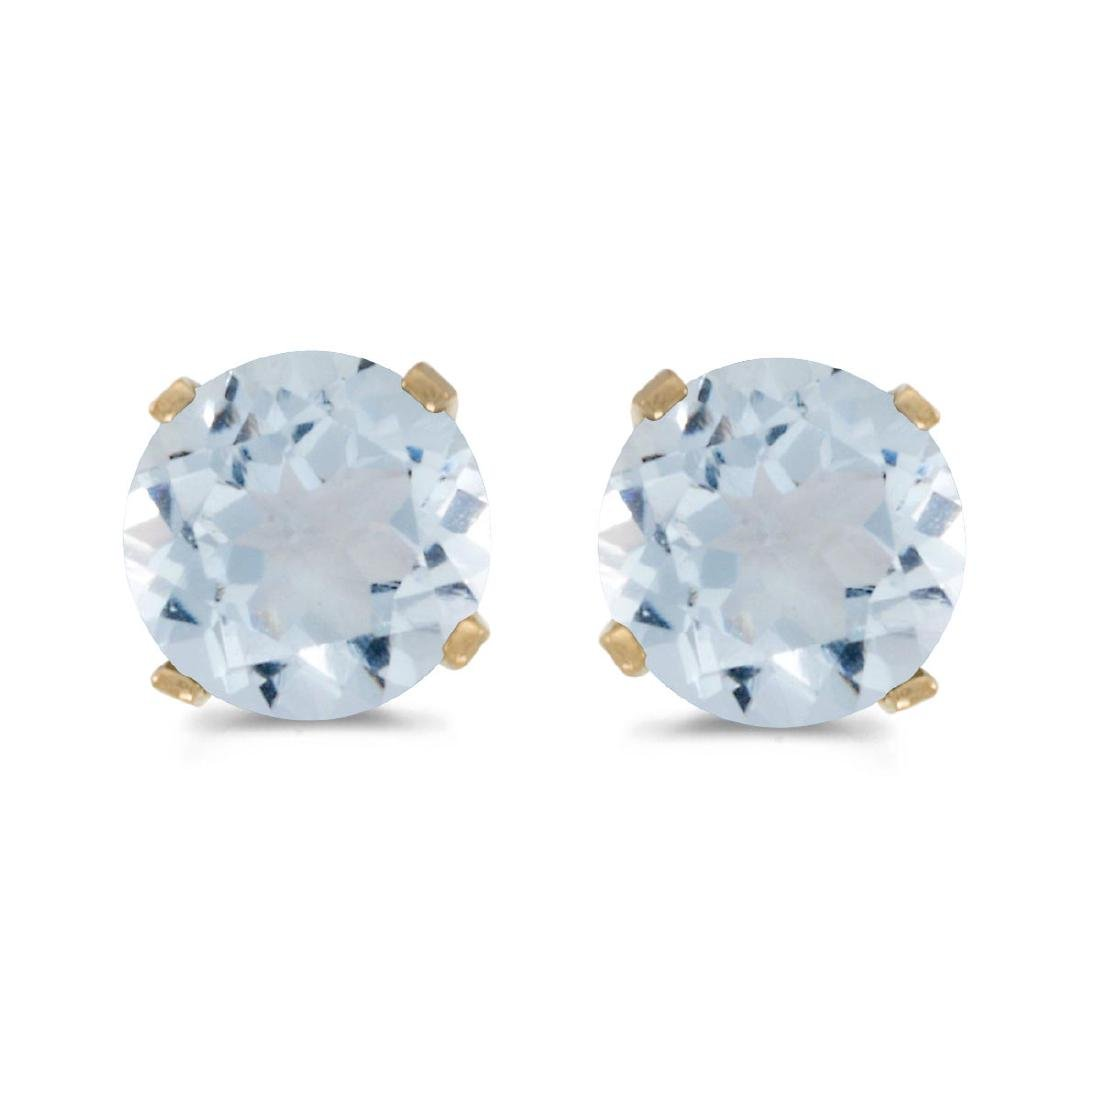 Certified 5 mm Natural Round Aquamarine Stud Earrings S